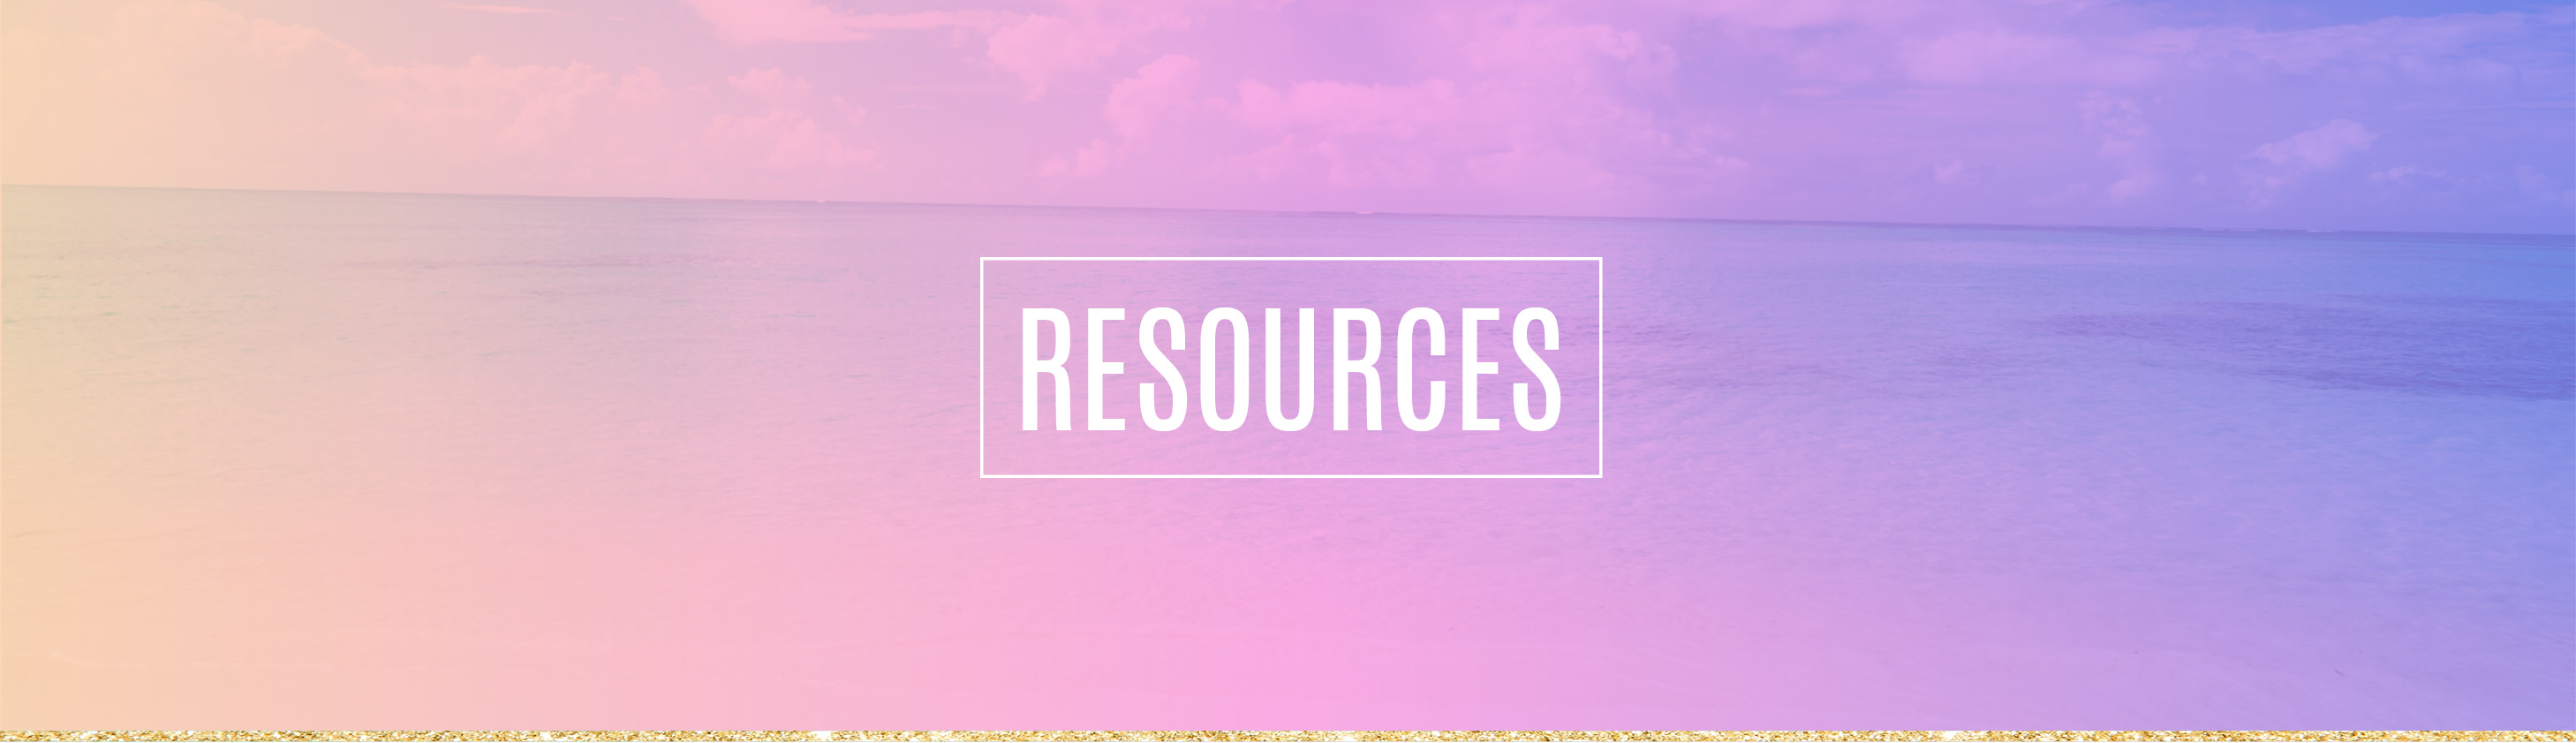 resources-banner